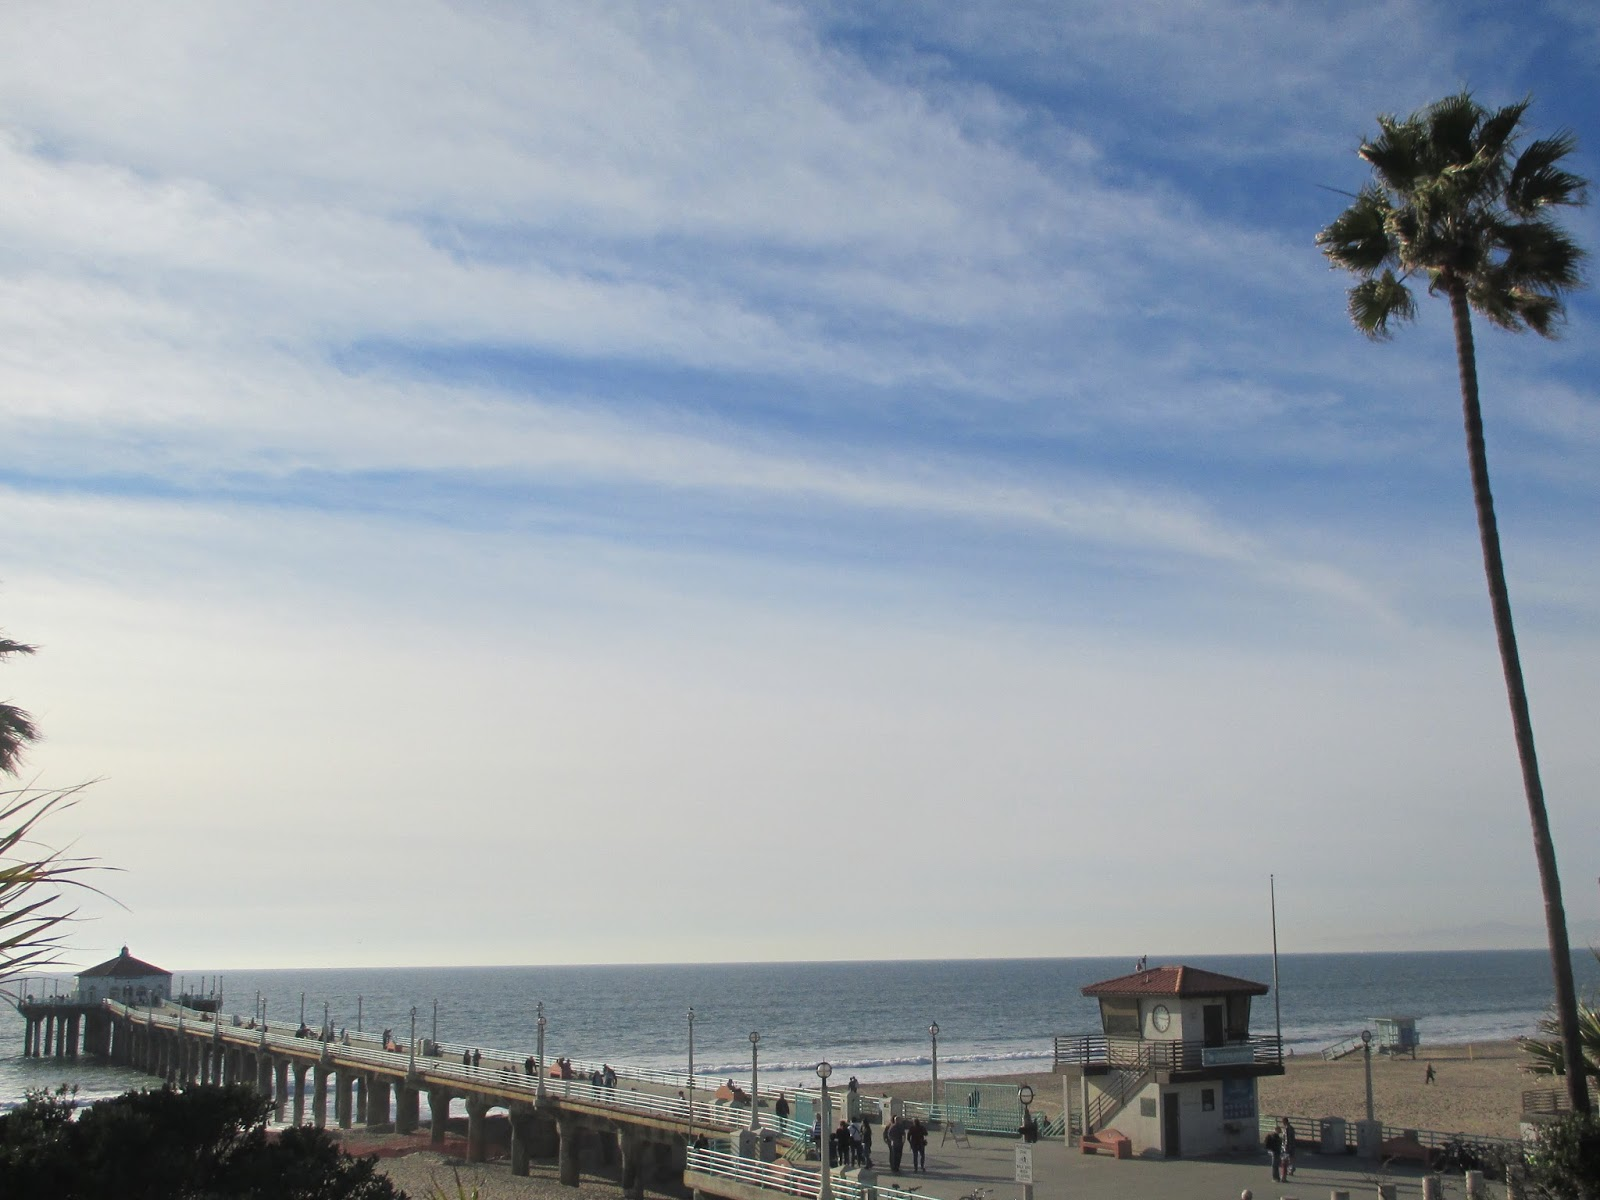 Elaine travels fishing with dynamite in manhattan beach for Fishing with dynamite manhattan beach